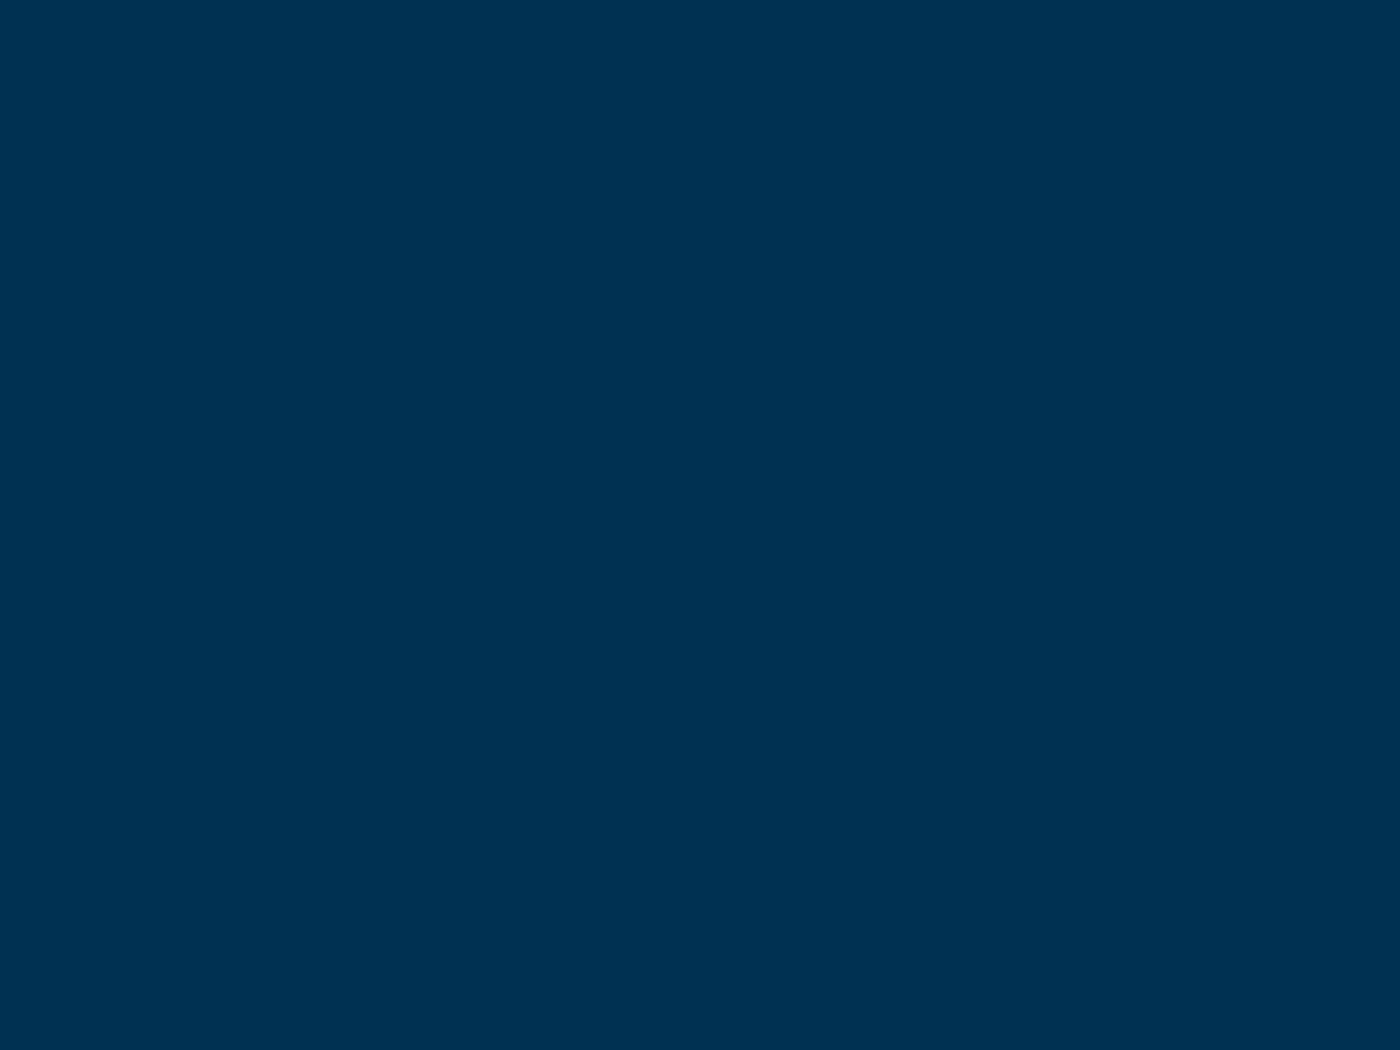 1400x1050 Prussian Blue Solid Color Background